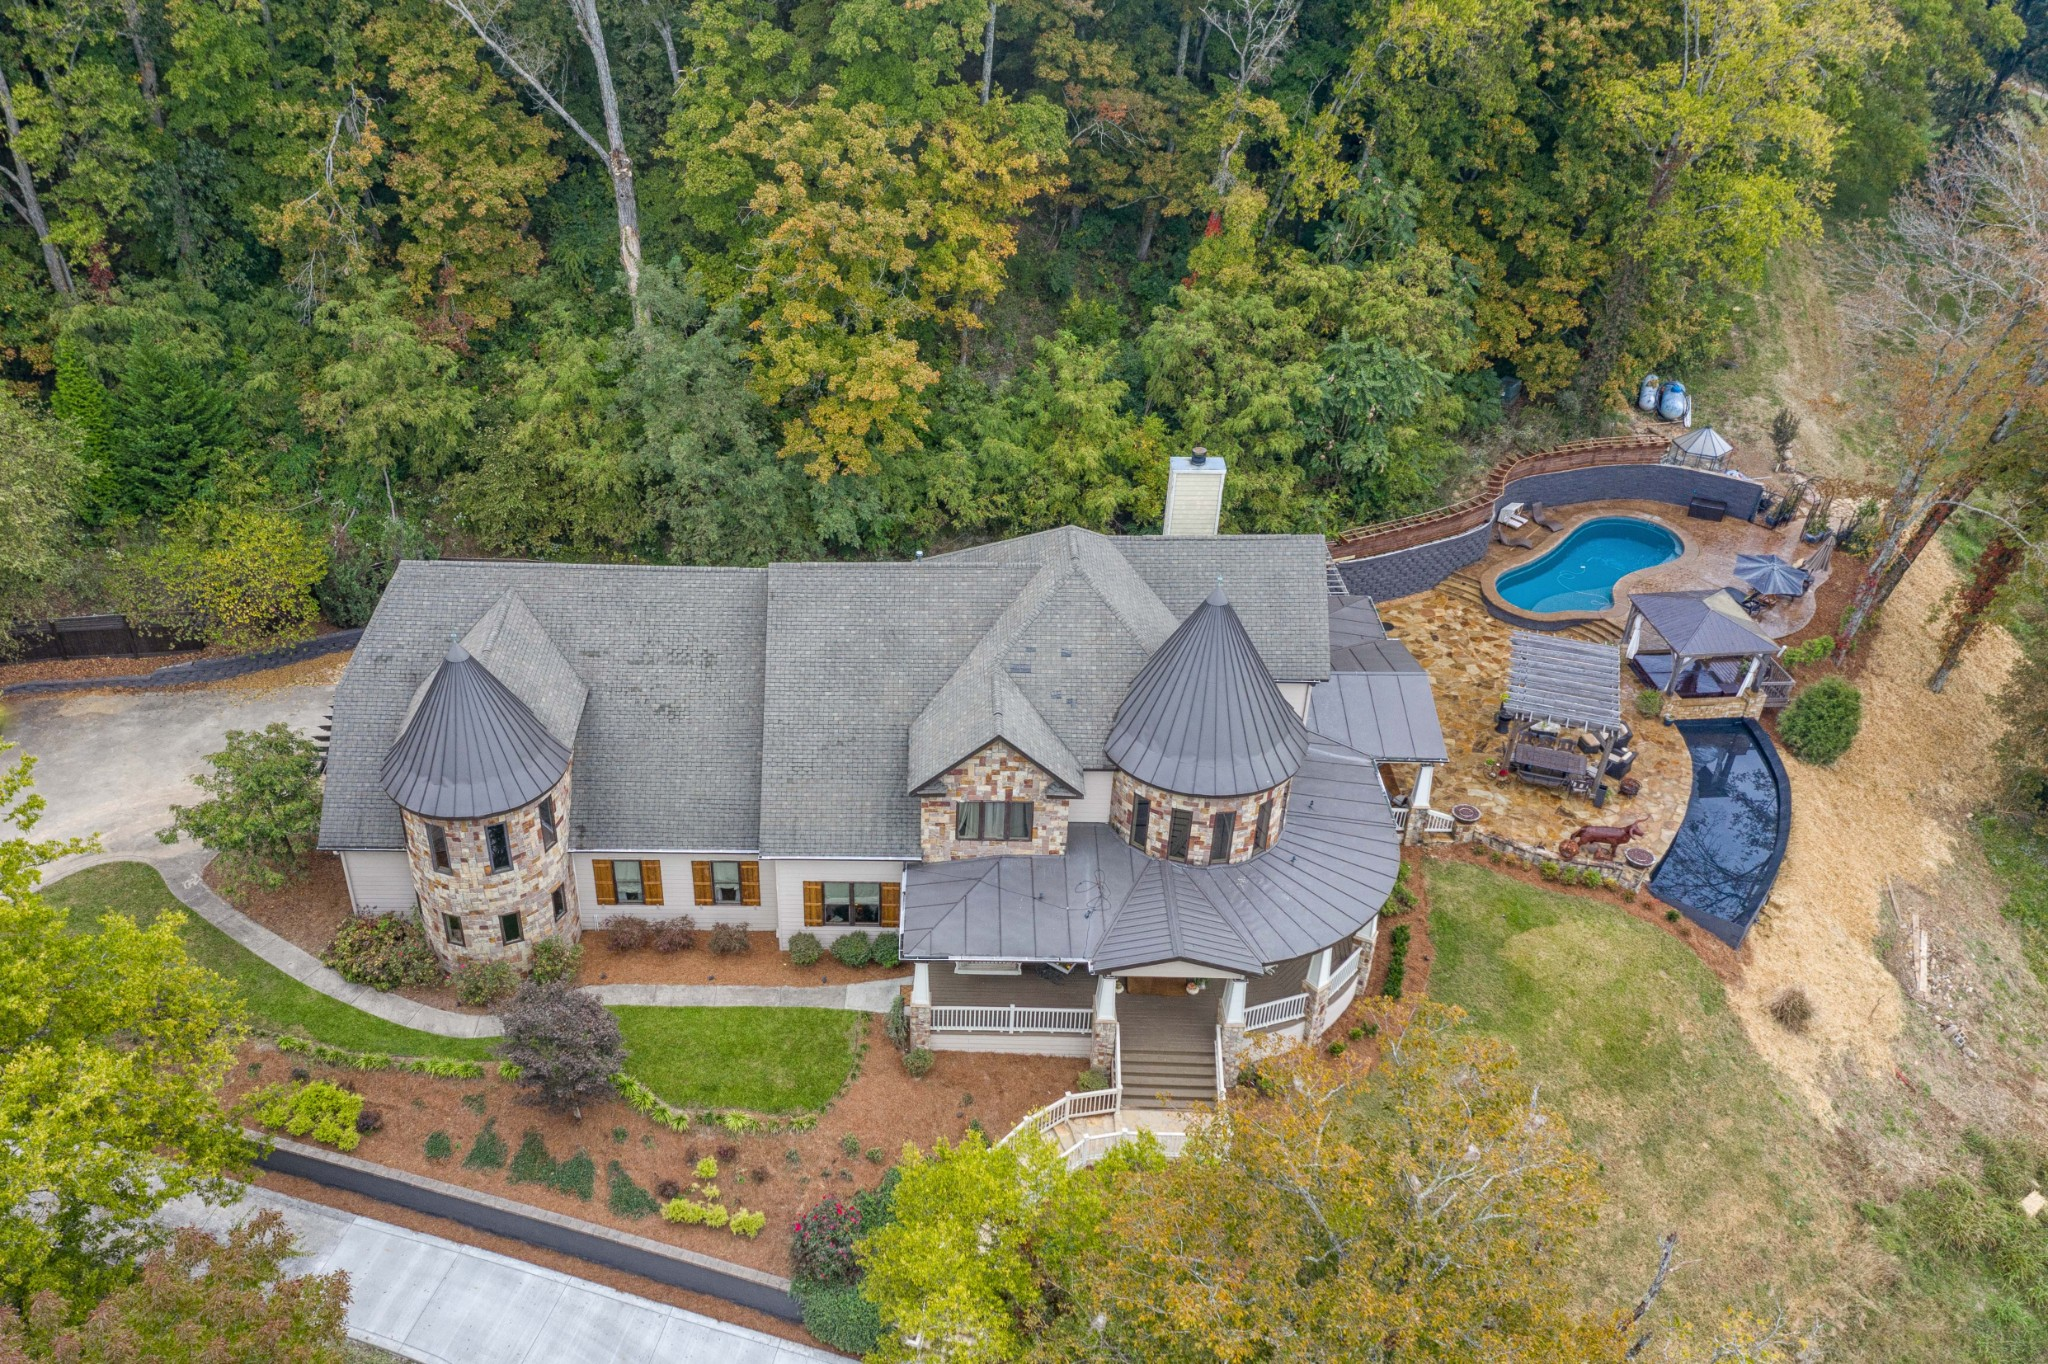 Custom country dream home!Enjoy the morning mist as it rolls across the hills w/10mile views from a 1500sqft wraparound porches overlooking 17acres ready for horses &livestock.Stunning entrance w/curved staircase; 4beds 4baths,chefs kitchen,1400sqft theater/game room.Entertain in a designer outdoor living space w/heated saltwater pool, covered hot tub & infinity edge water feature,outdoor kitchen w/fireplace&bar.52'x 90' tobacco barn w/concrete floor, 5horse stalls &workshop. Cozy cabin w/pond.